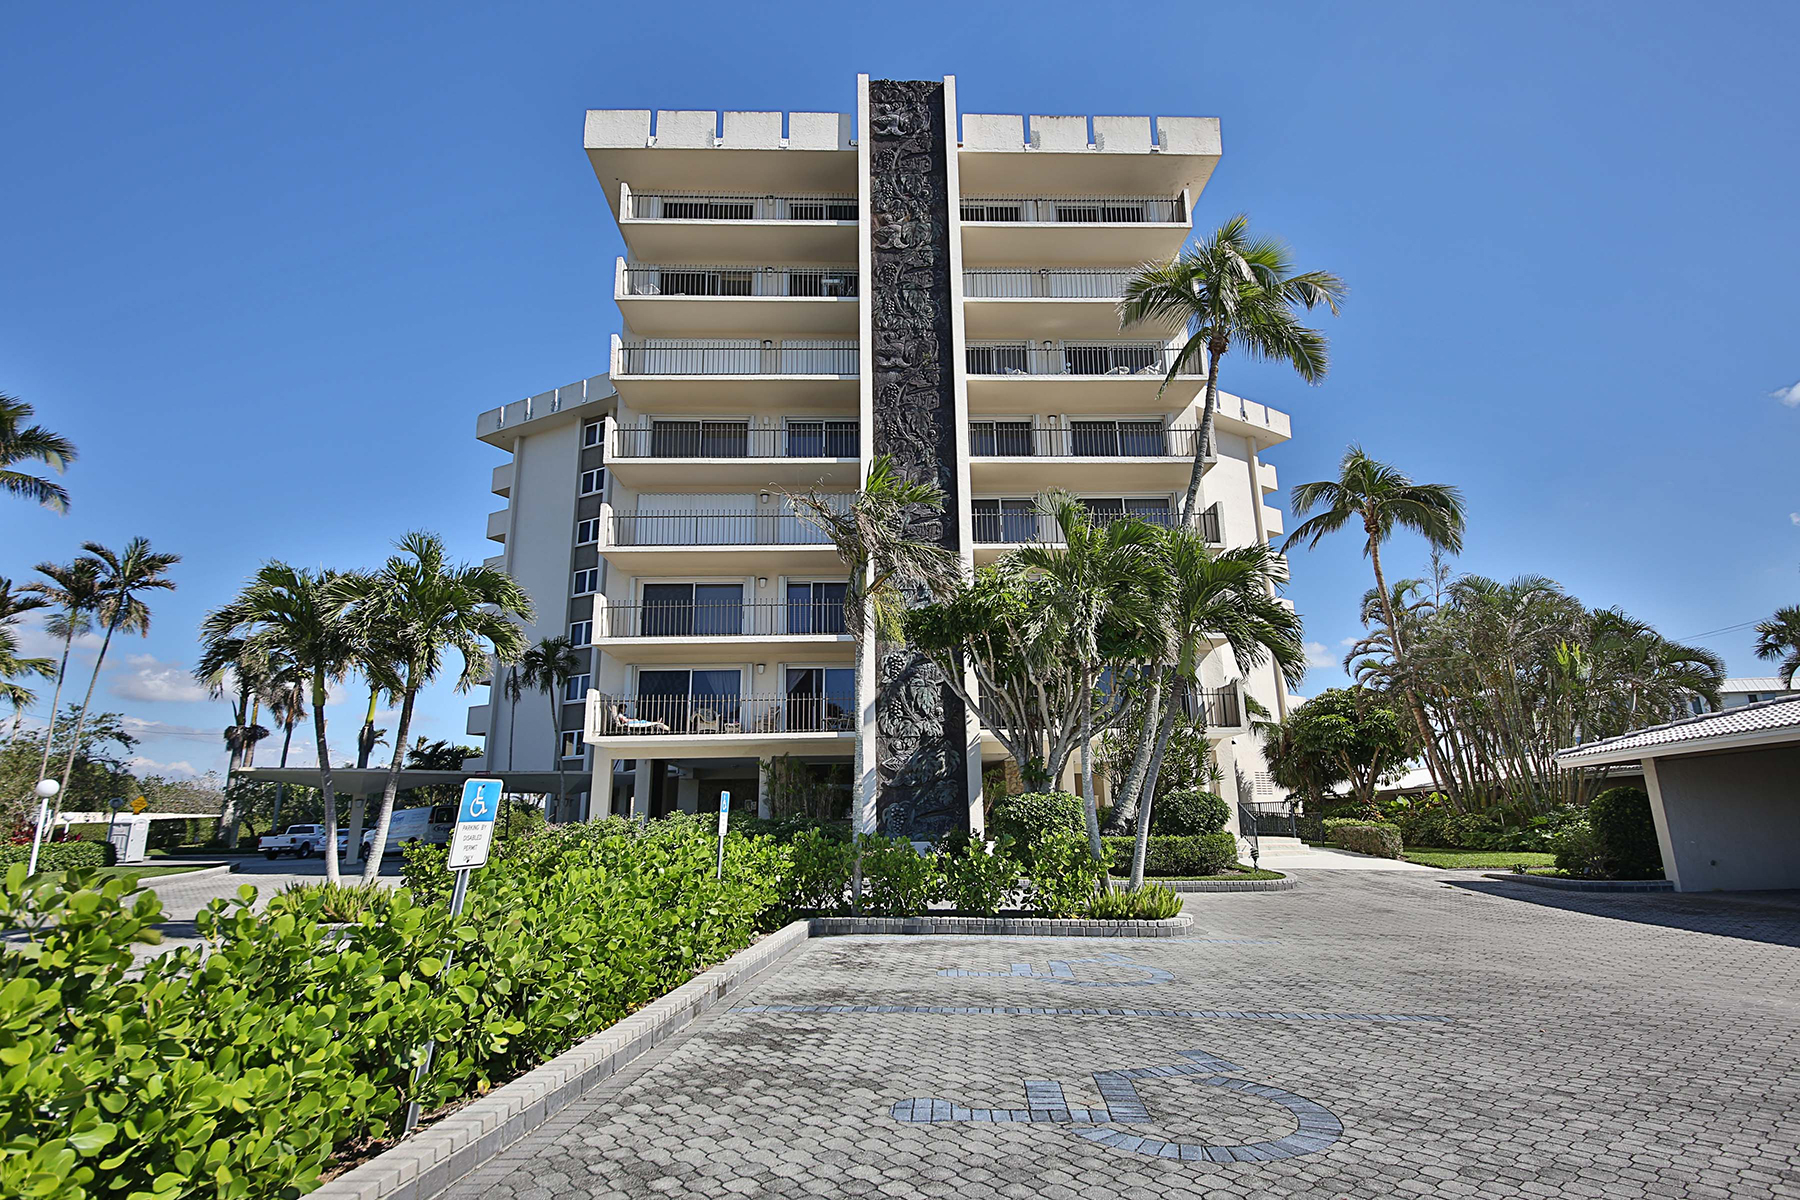 شقة بعمارة للـ Rent في MOORINGS - KINGS PORT 2150 Gulf Shore Blvd N PS, Naples, Florida, 34102 United States